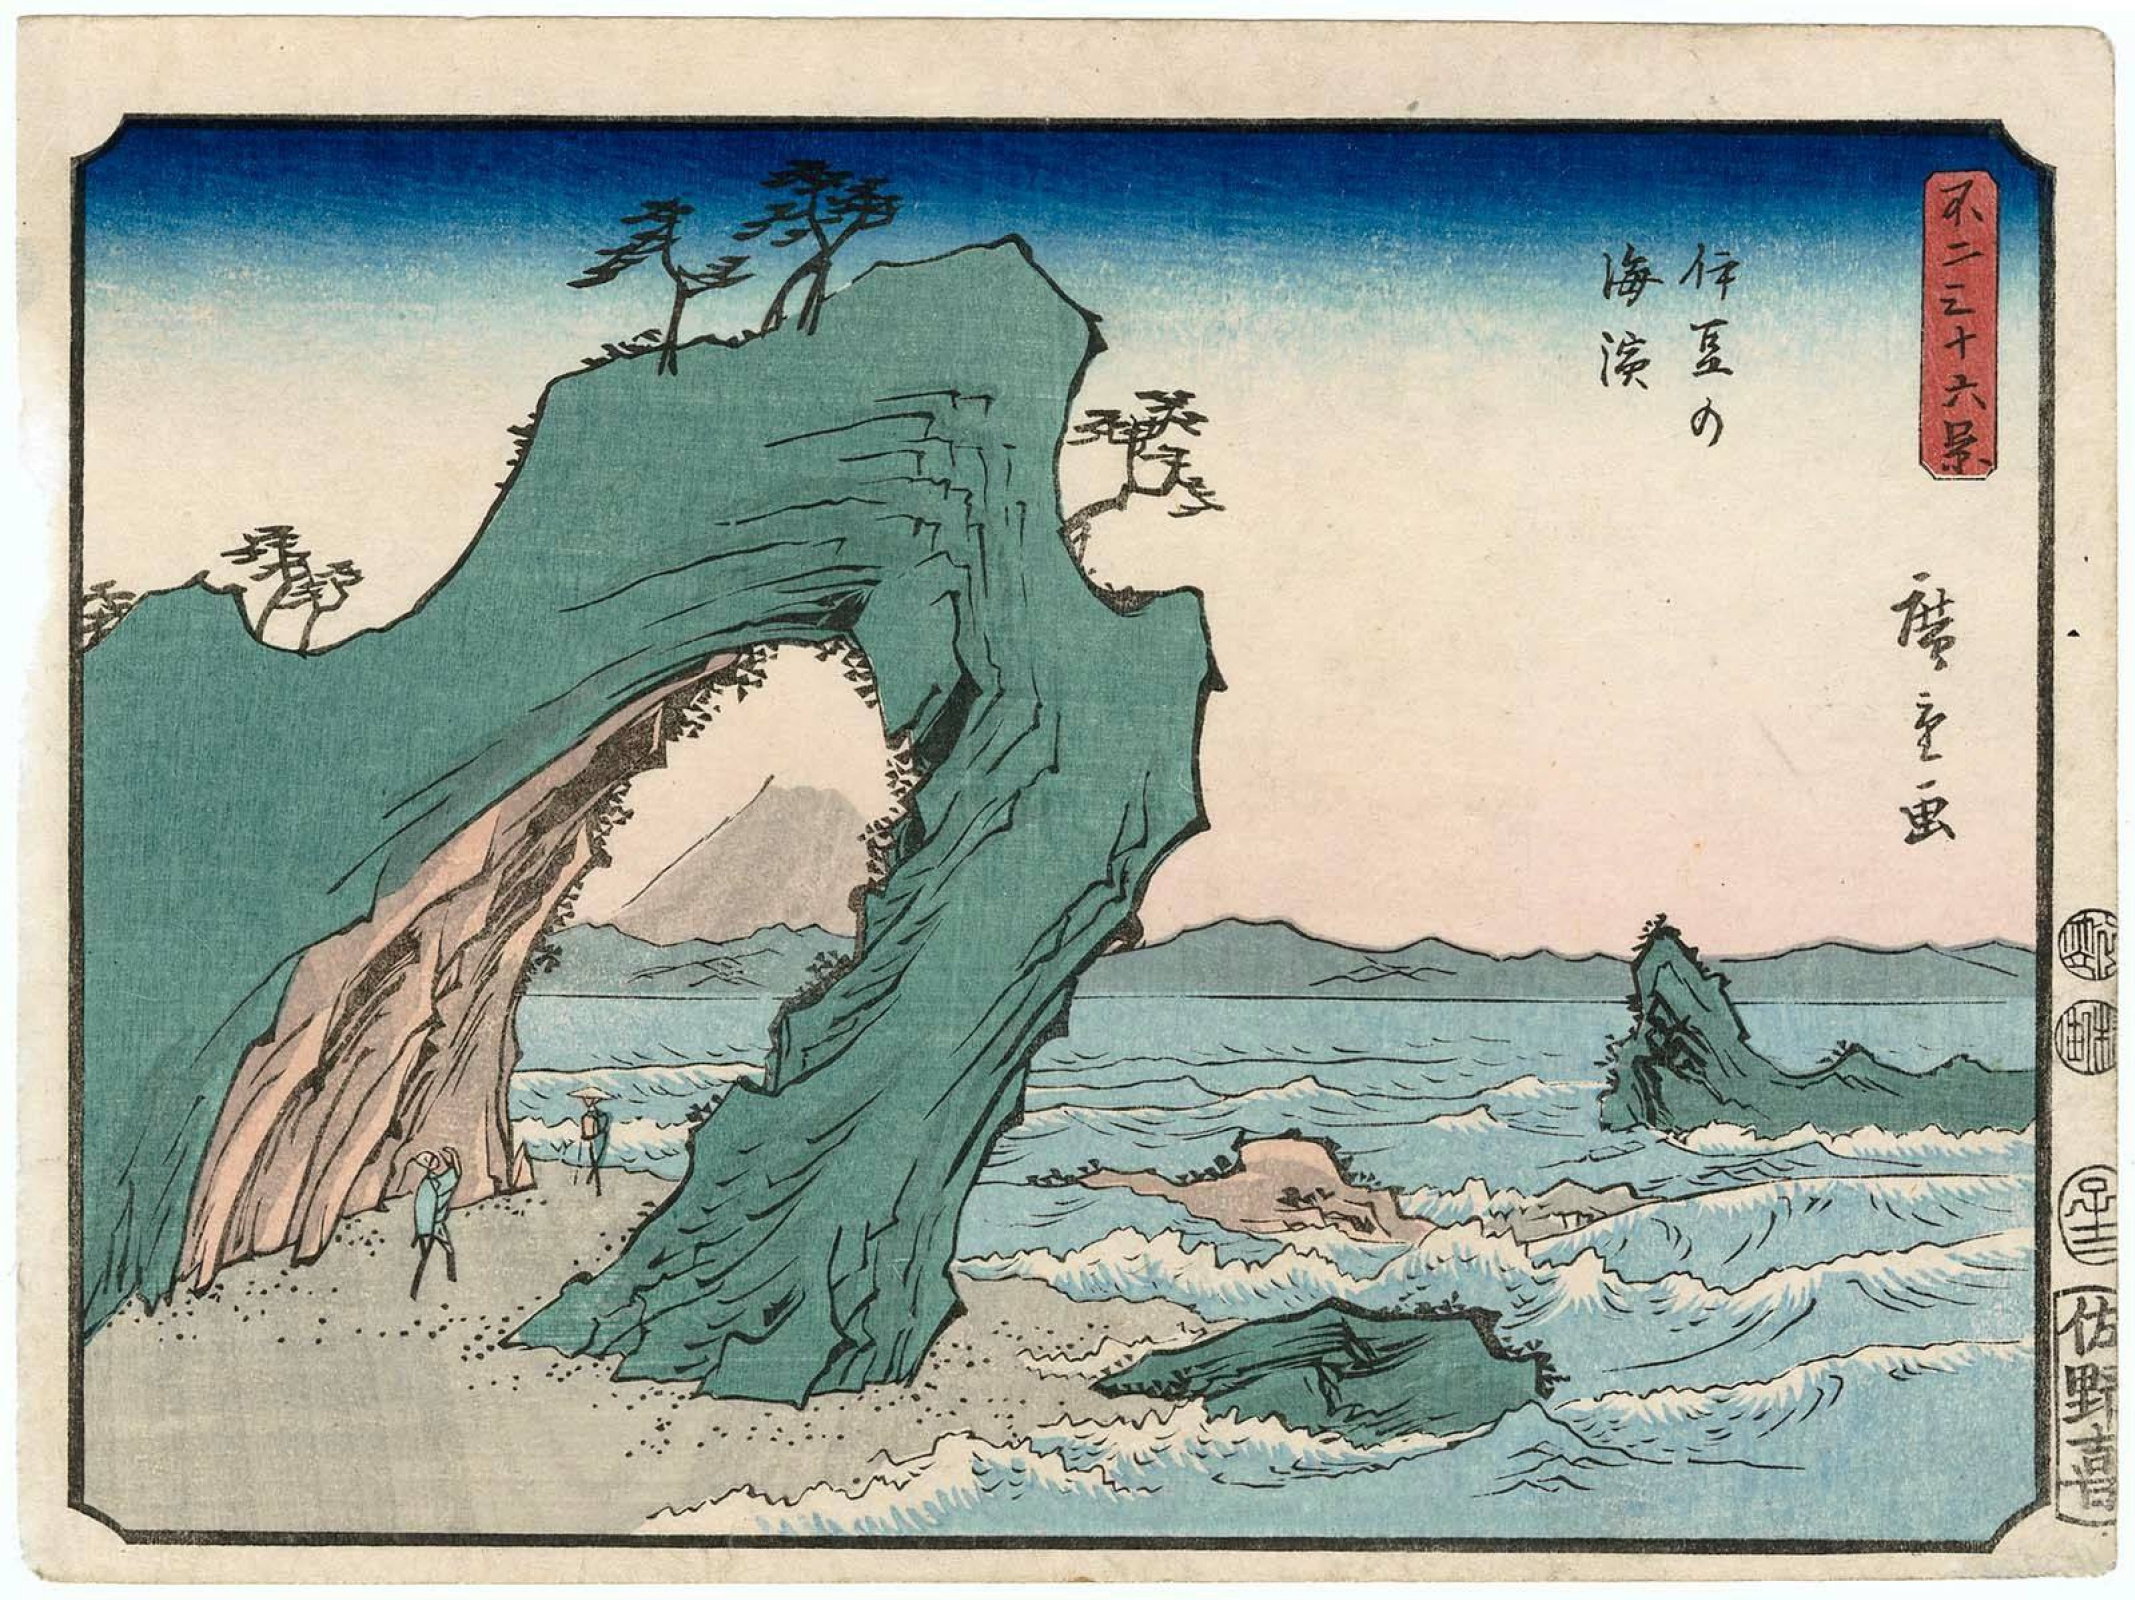 Utagawa Hiroshige. The sea coast in the province of Izu